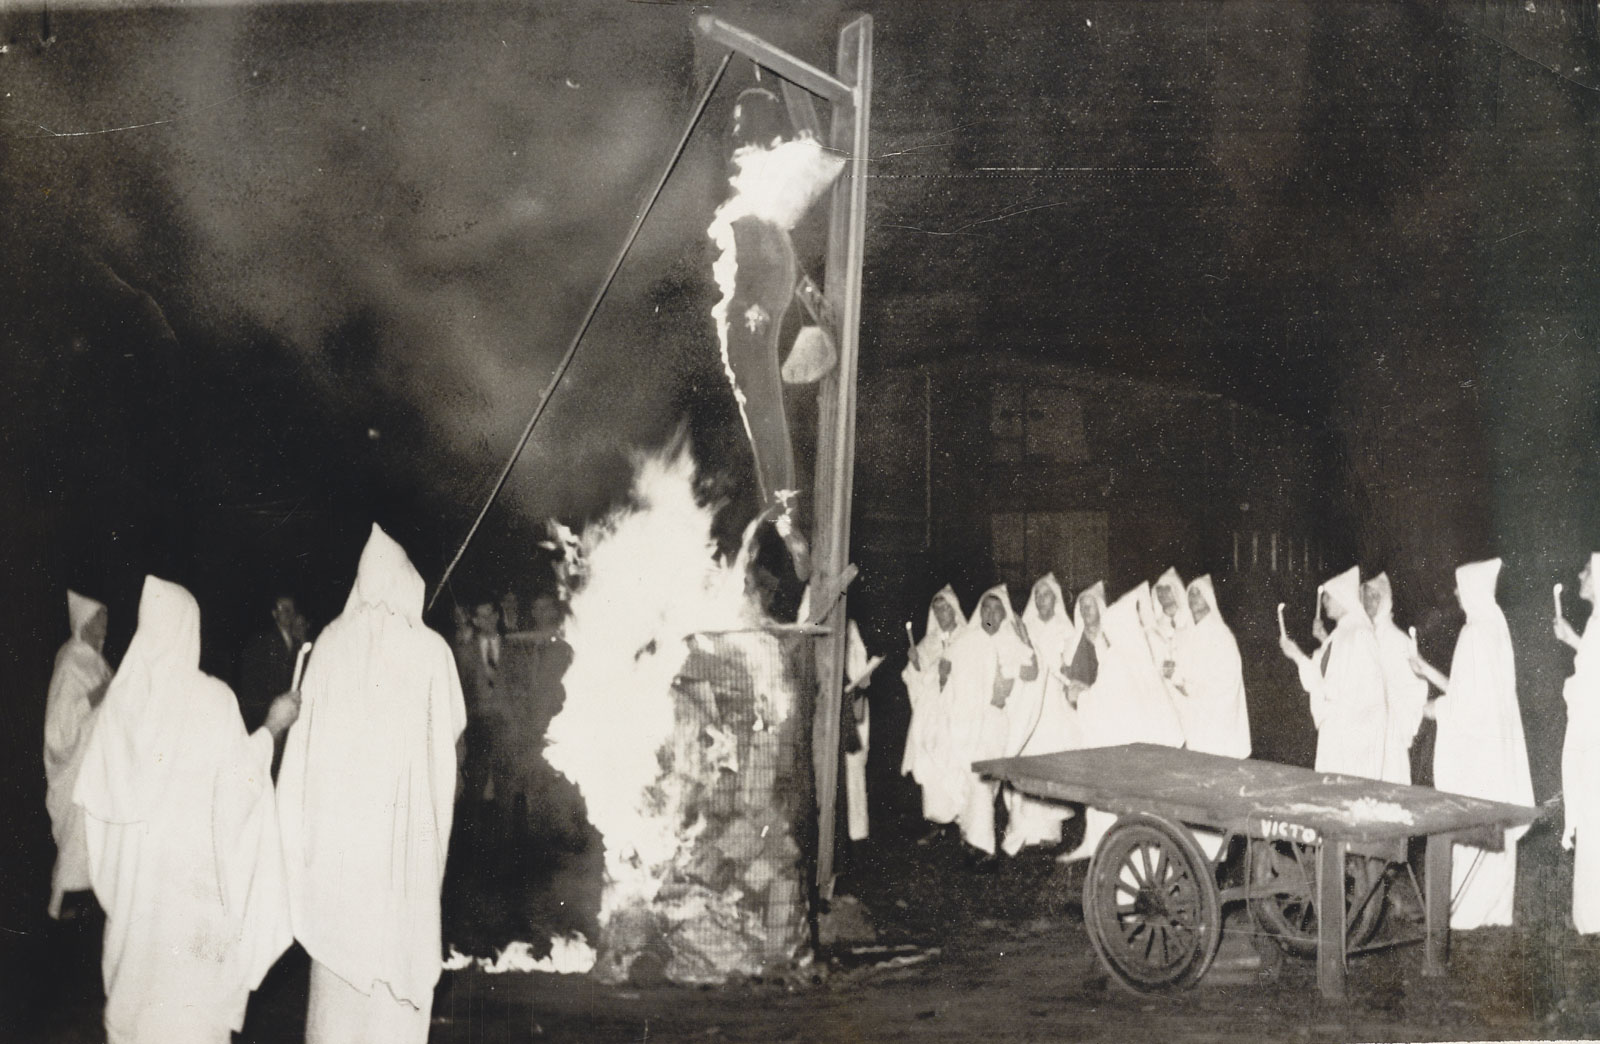 University of Toronto students burn an effigy of Joseph McCarthy, 1953